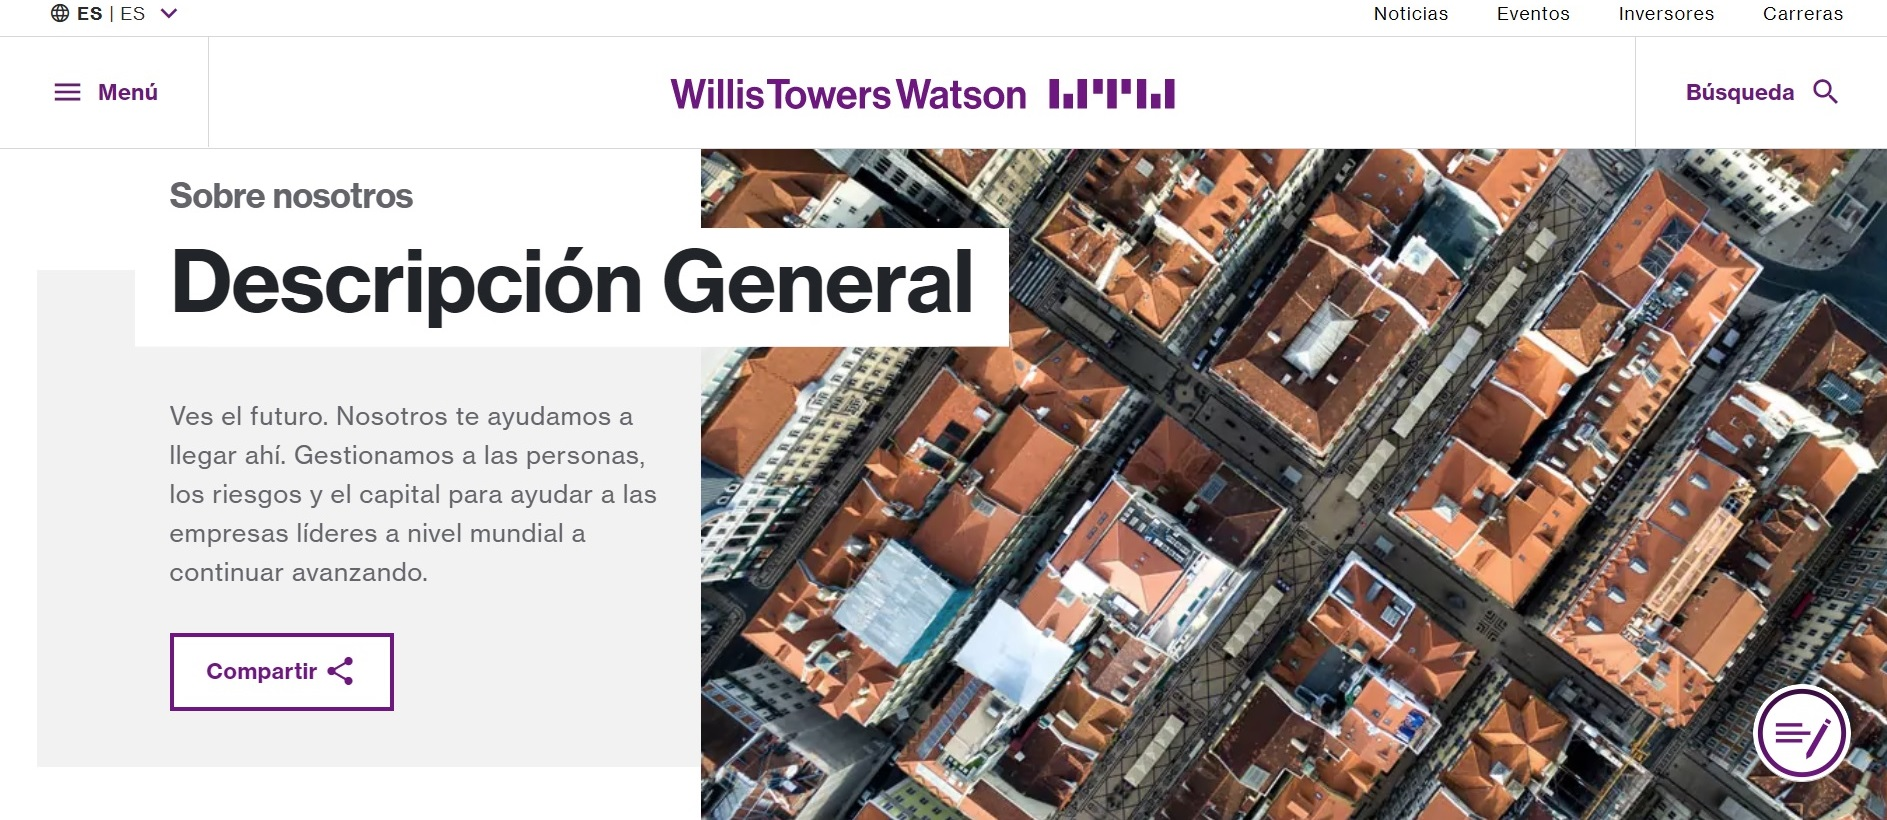 Willis Towers Watson noticias de seguros